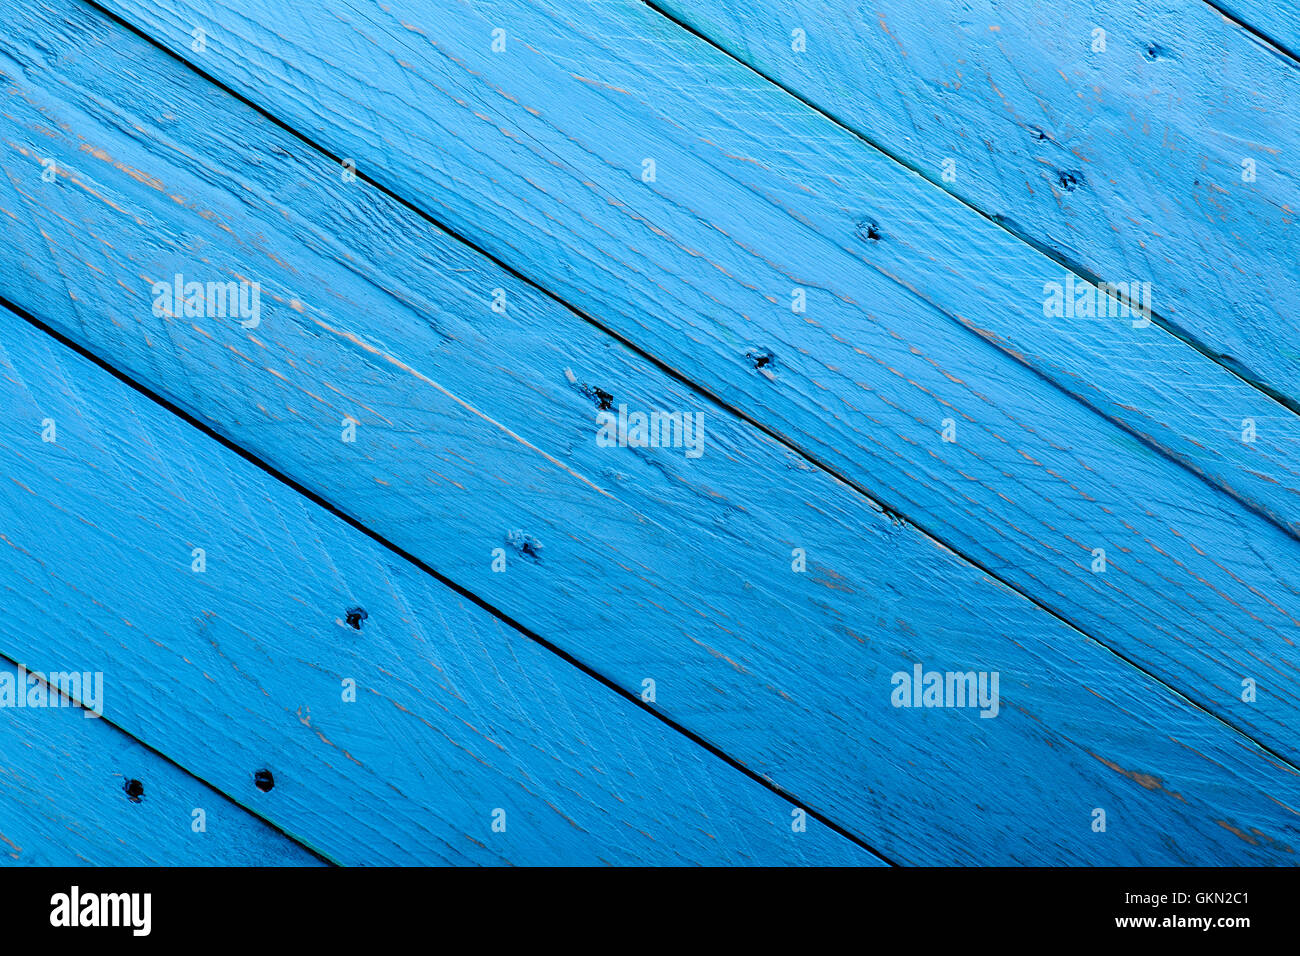 Blue Parallel Wooden Boards with Holes - Stock Image